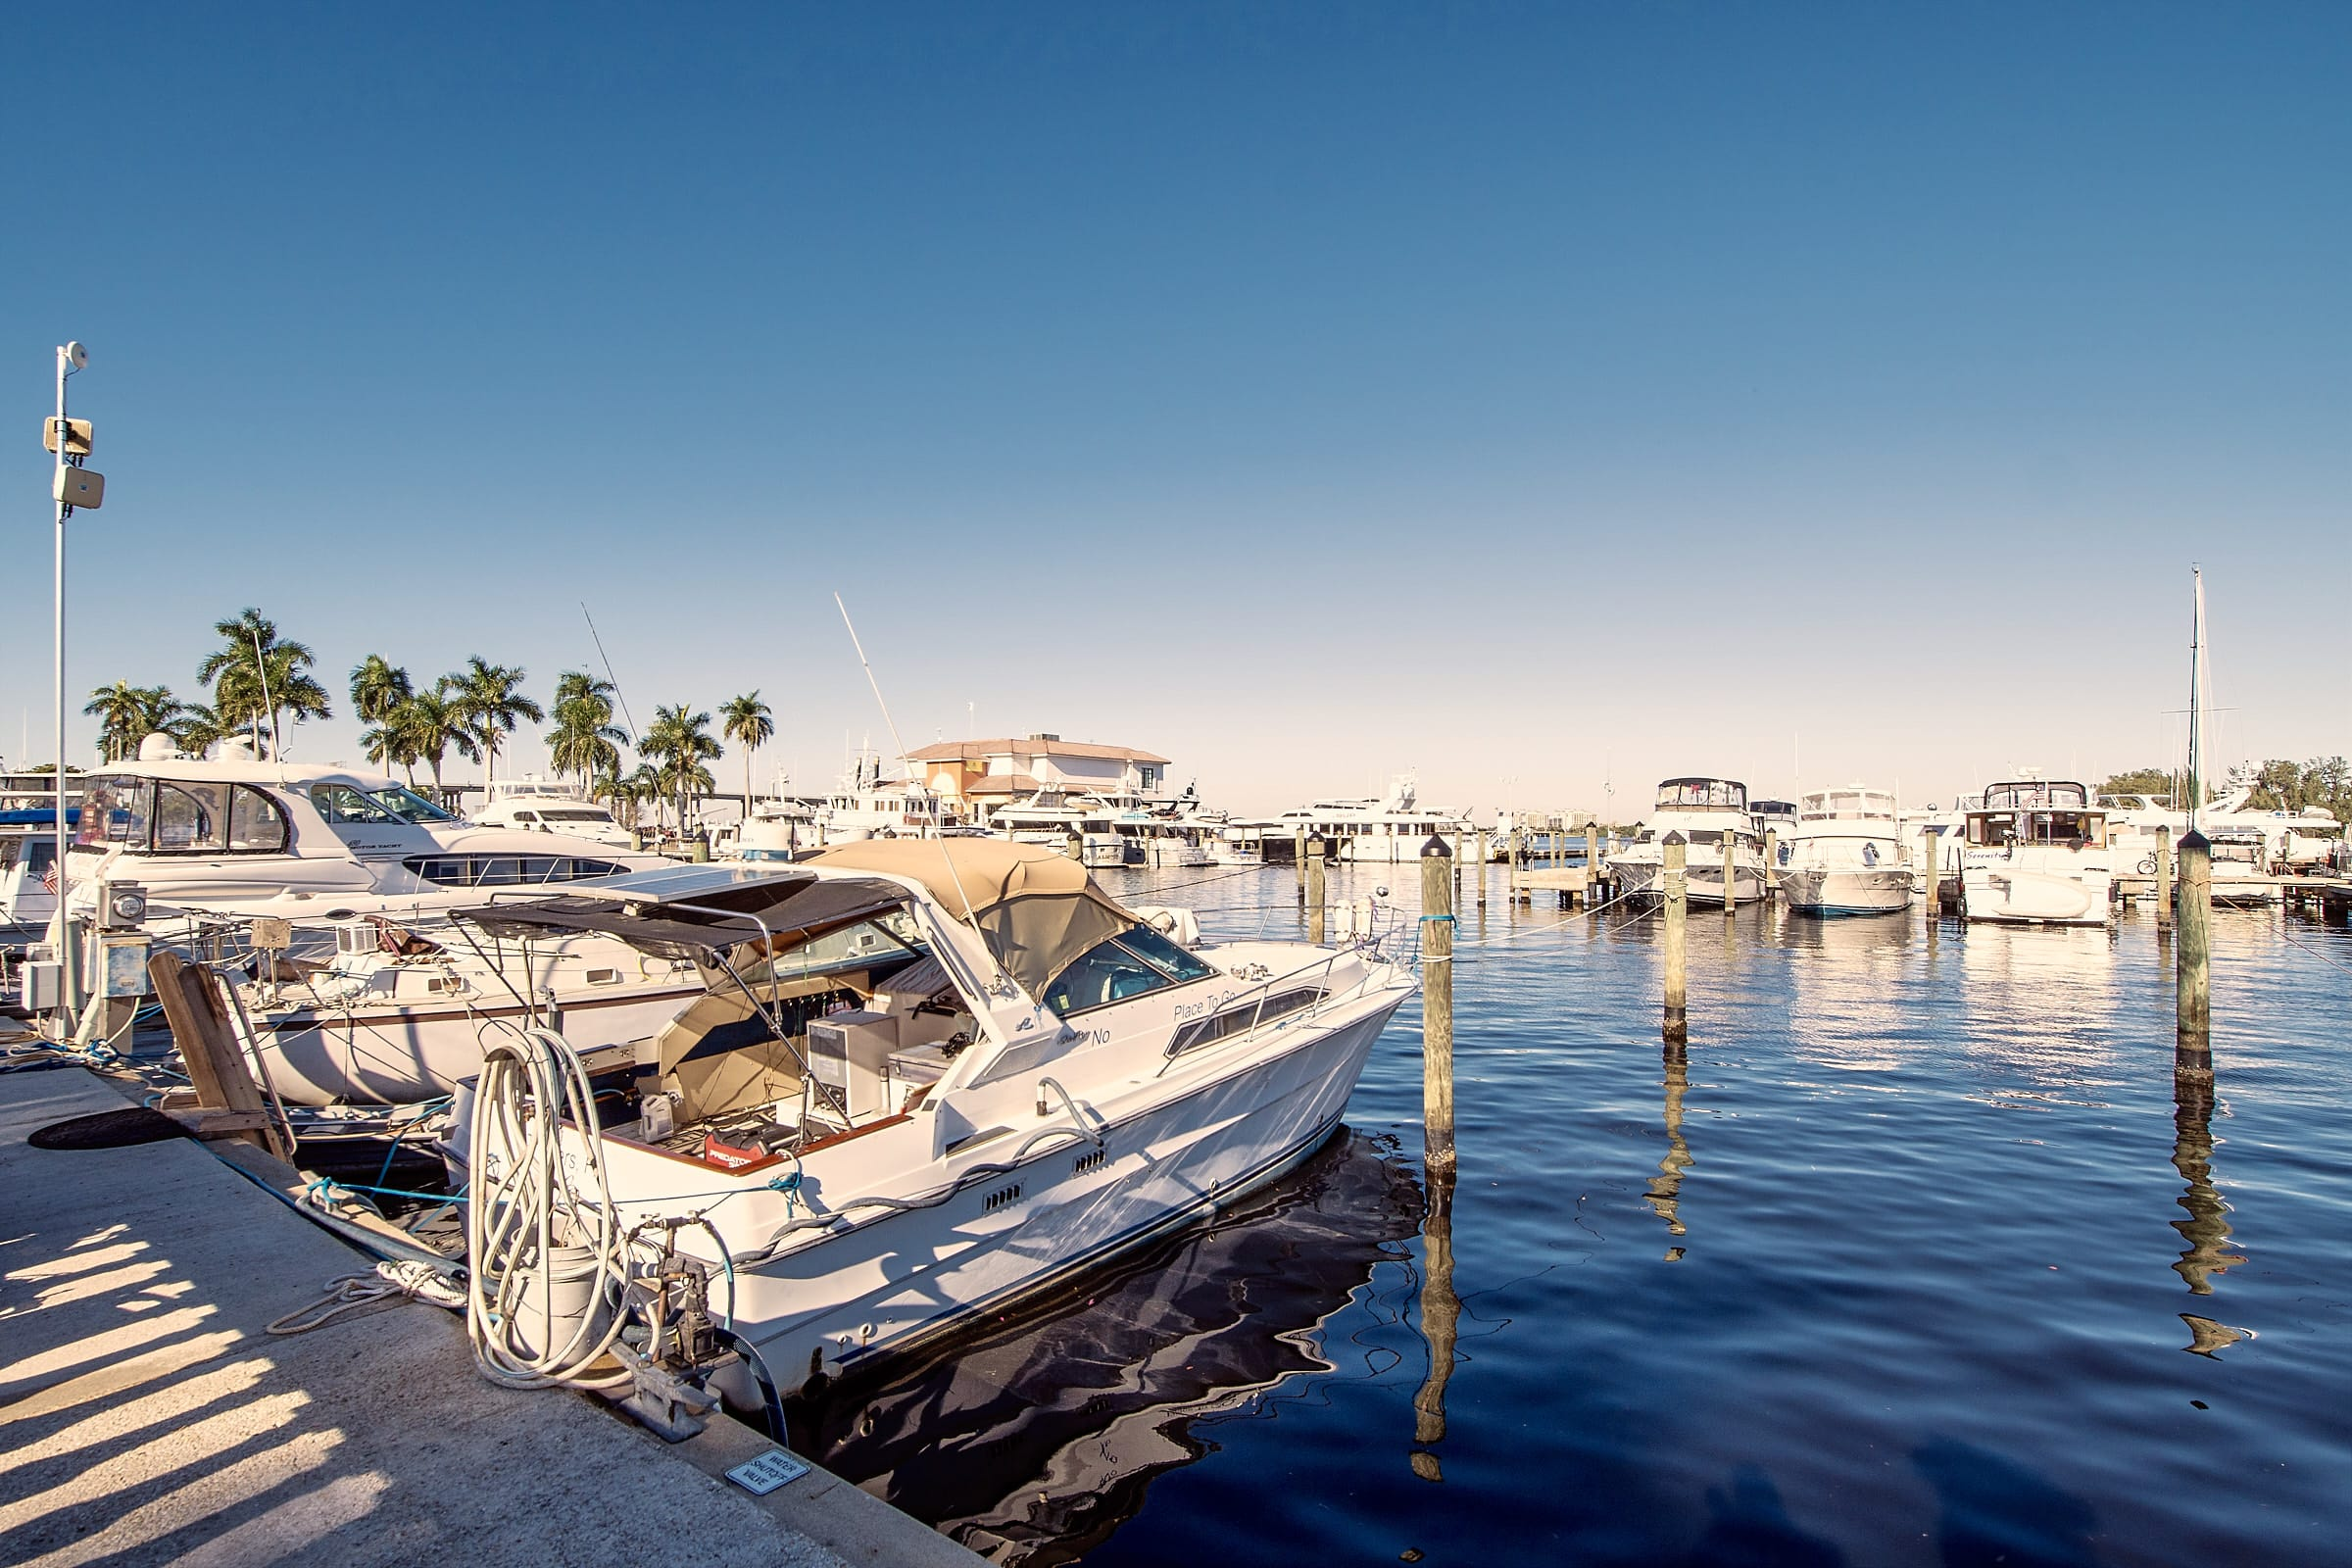 Motorboats and yachts in Ft Myers Yacht basin